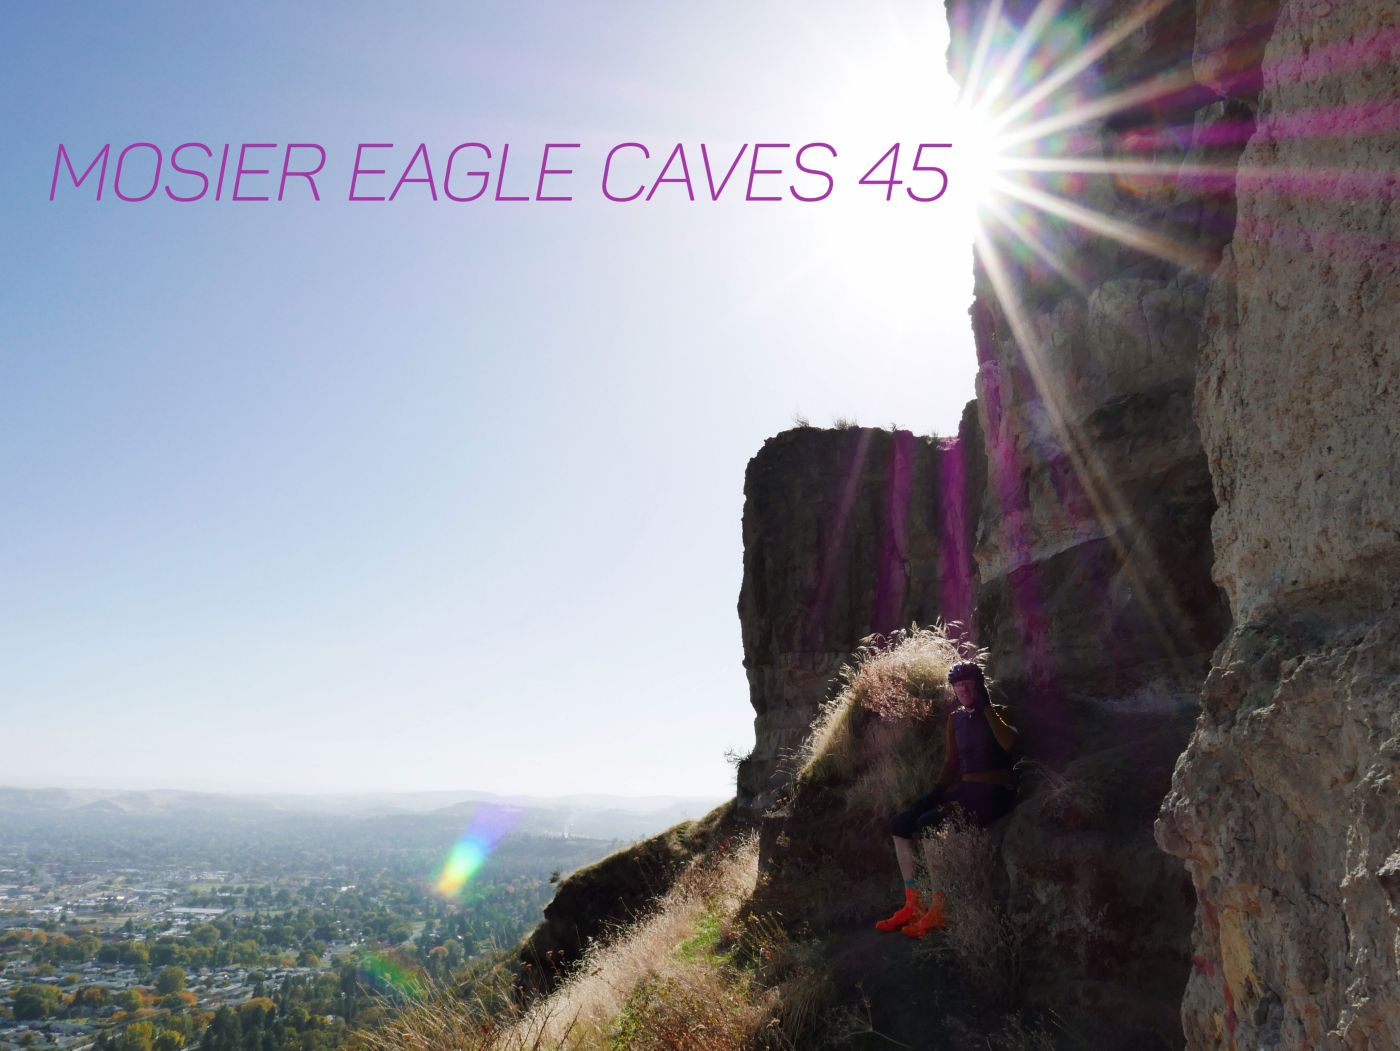 mosier eagle caves route